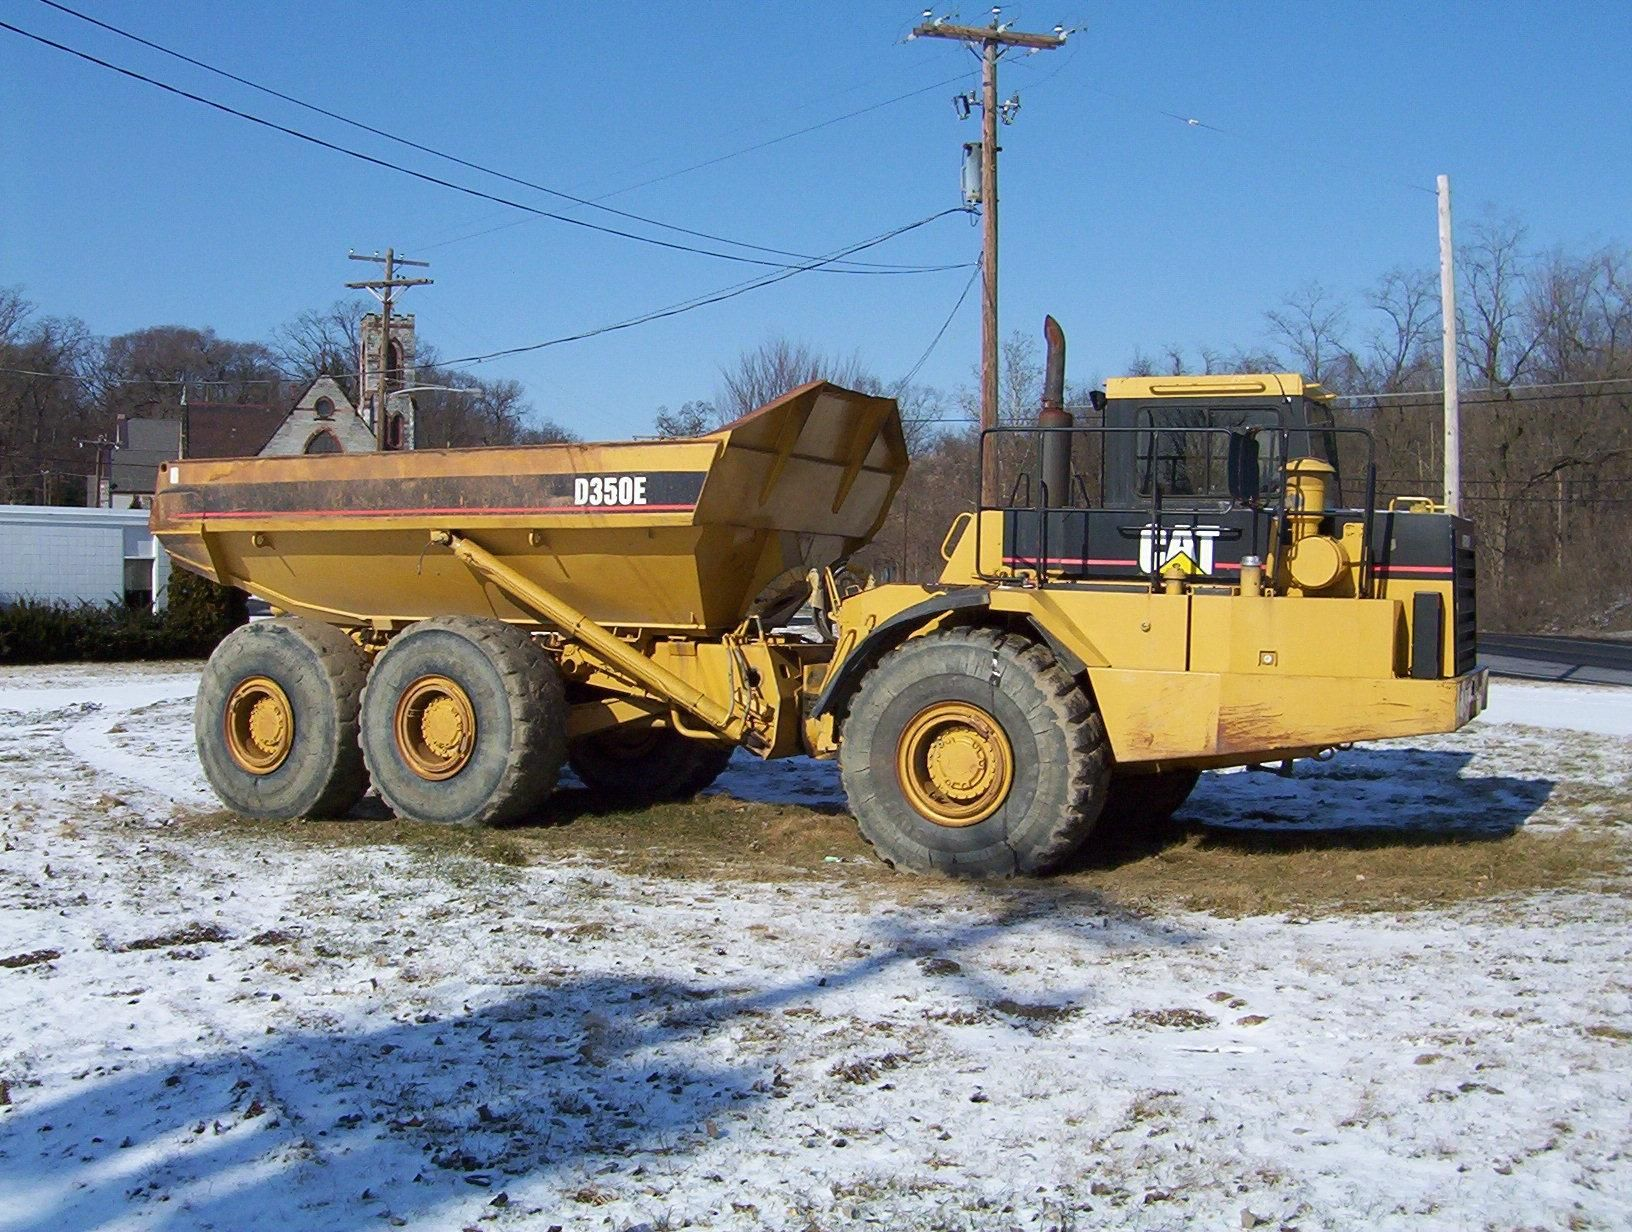 Filecaterpillar dump truck jpg